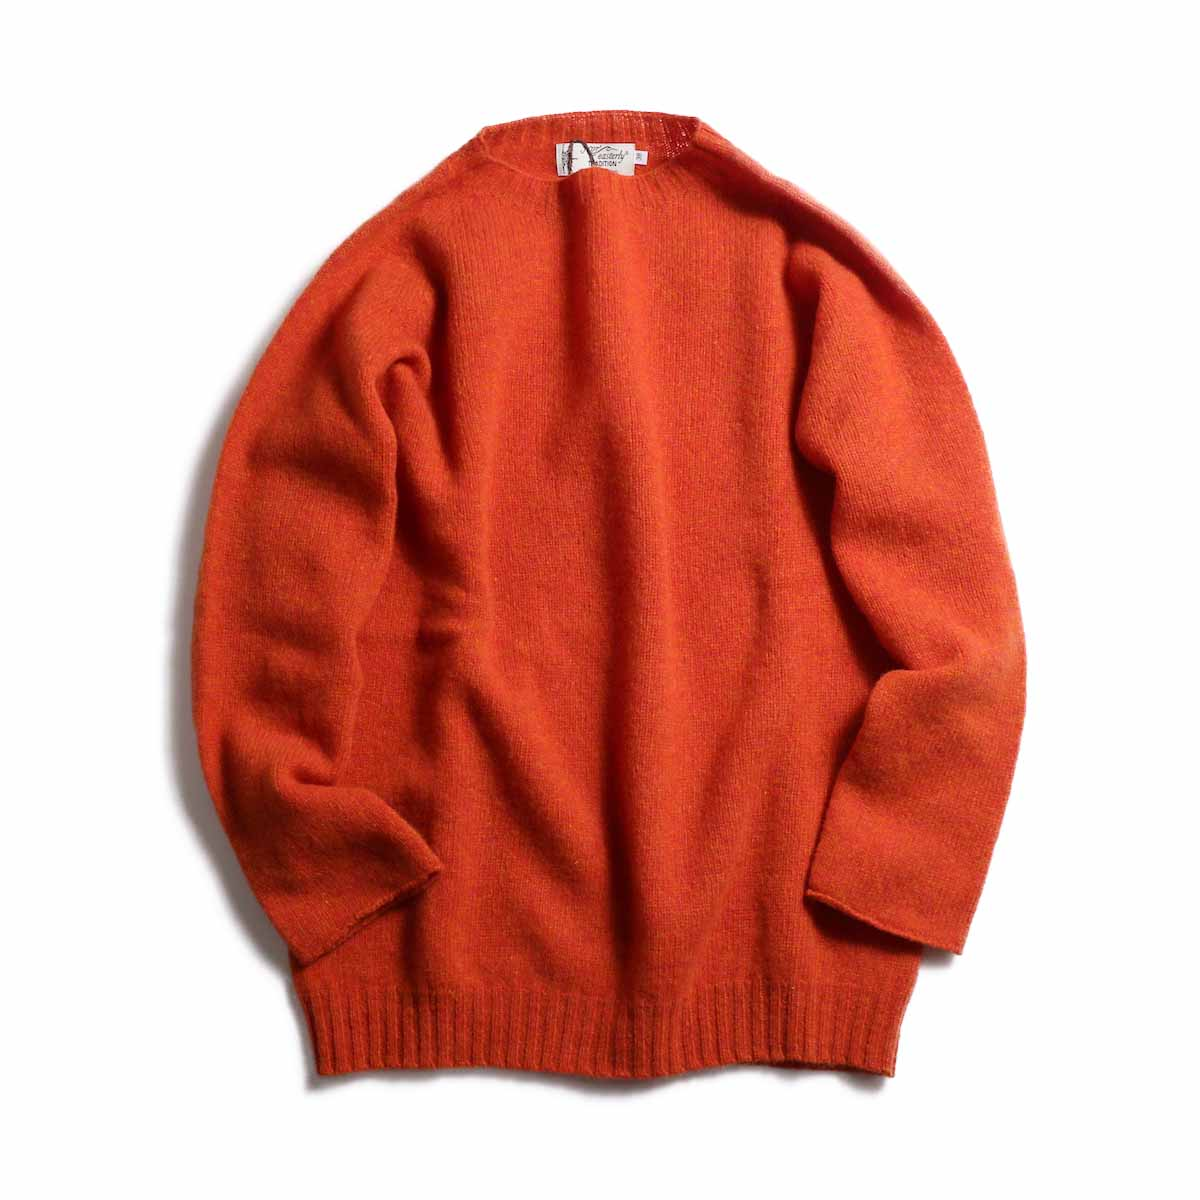 NOR'EASTERLY / L/S Crew Neck Knit -ORANGE